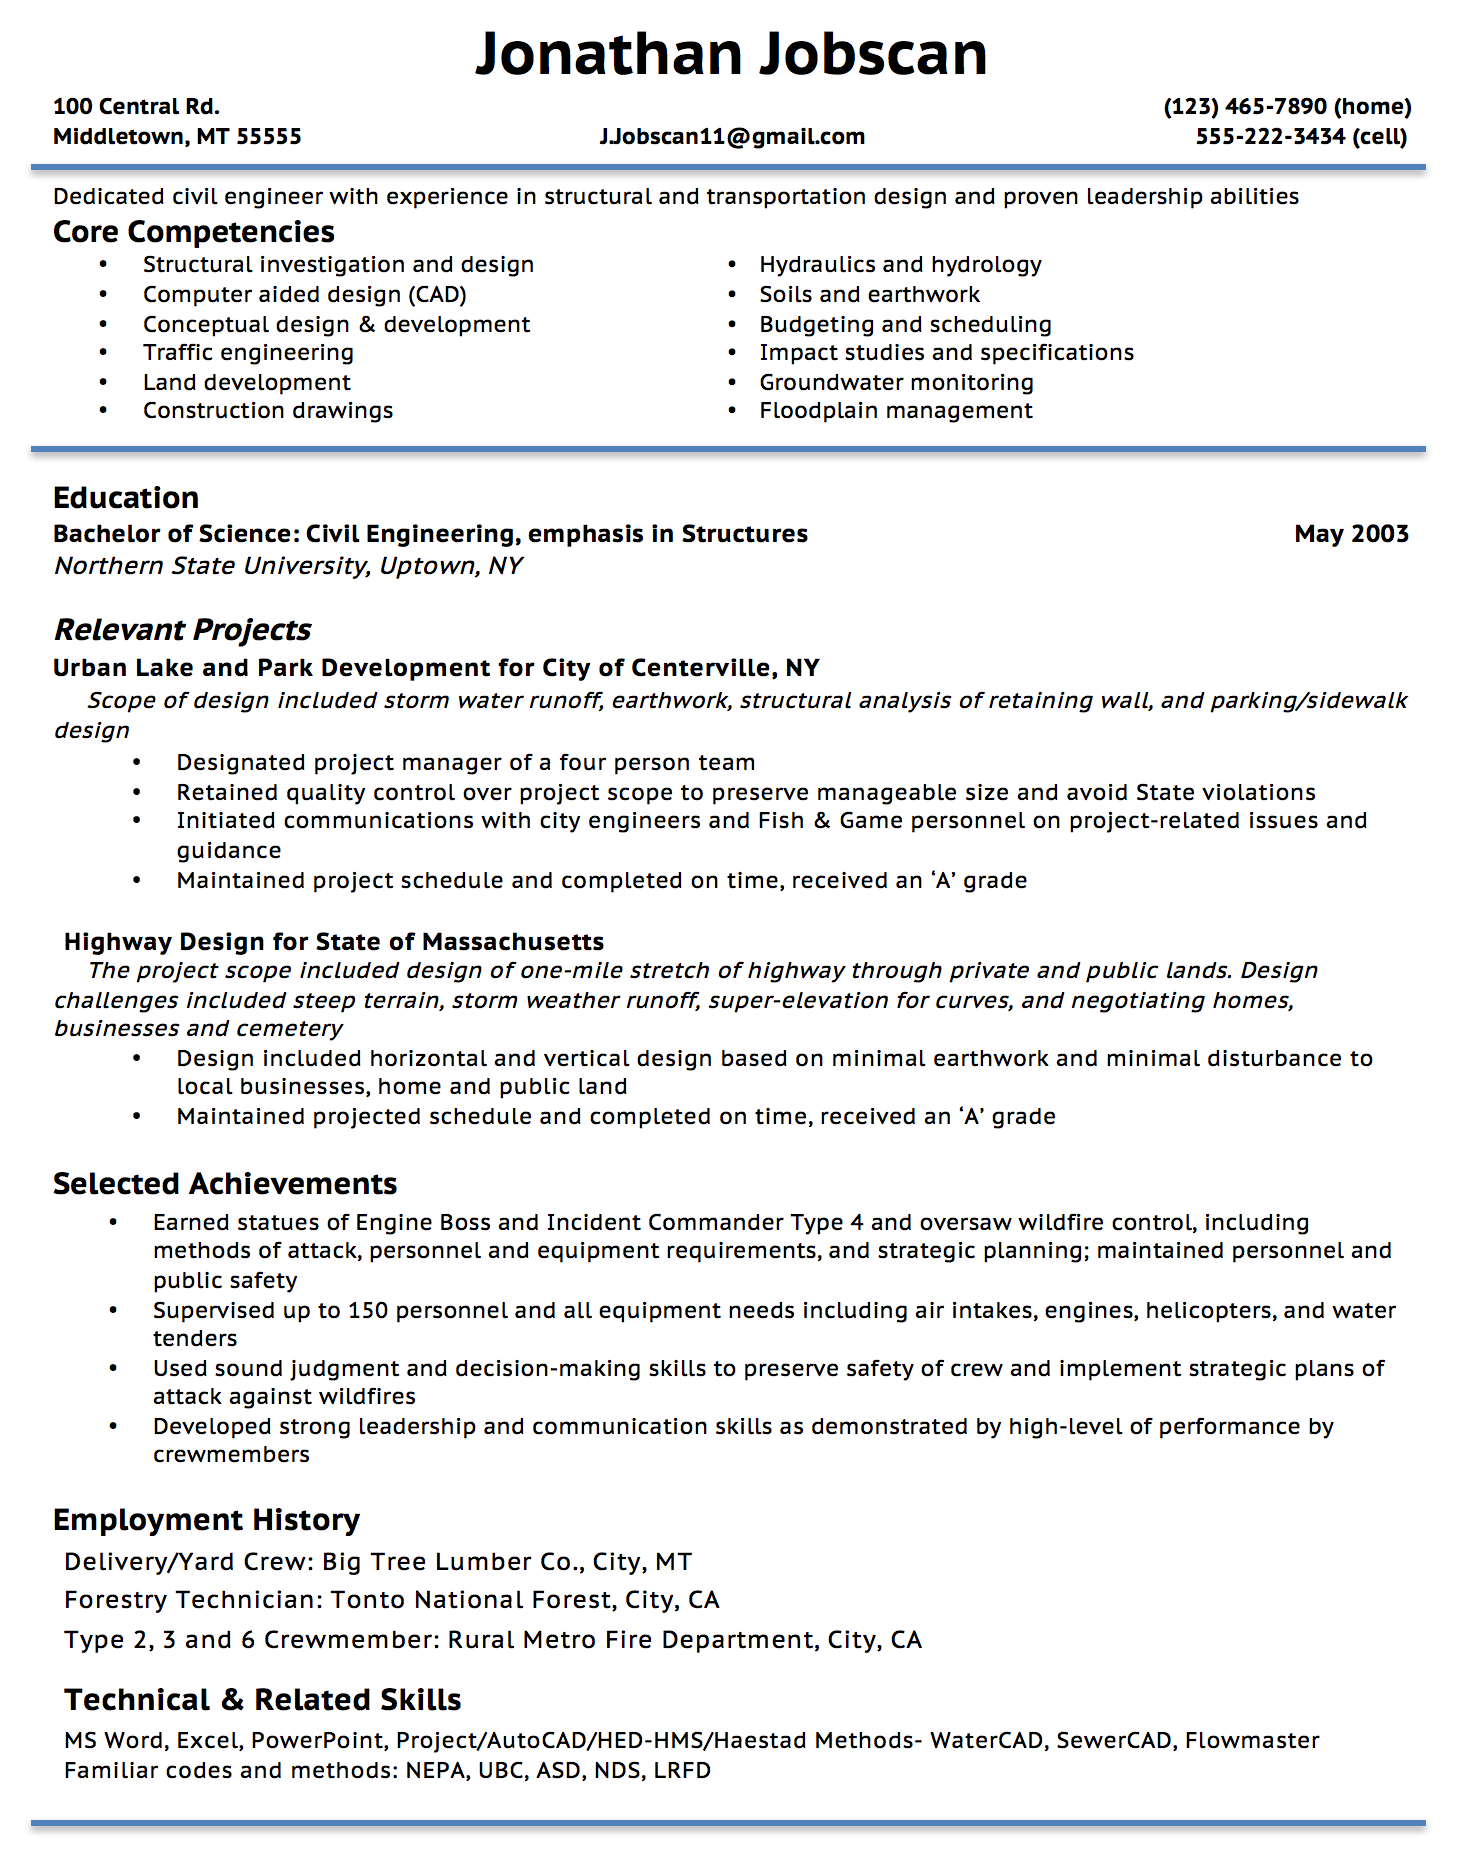 Opposenewapstandardsus  Winsome Resume Writing Guide  Jobscan With Gorgeous Example Of A Functional Resume Format With Alluring Administrative Assistant Resume Objective Also Machinist Resume In Addition Professional Resume Writing And Hybrid Resume As Well As Resume Skill Examples Additionally Resume No Experience From Jobscanco With Opposenewapstandardsus  Gorgeous Resume Writing Guide  Jobscan With Alluring Example Of A Functional Resume Format And Winsome Administrative Assistant Resume Objective Also Machinist Resume In Addition Professional Resume Writing From Jobscanco